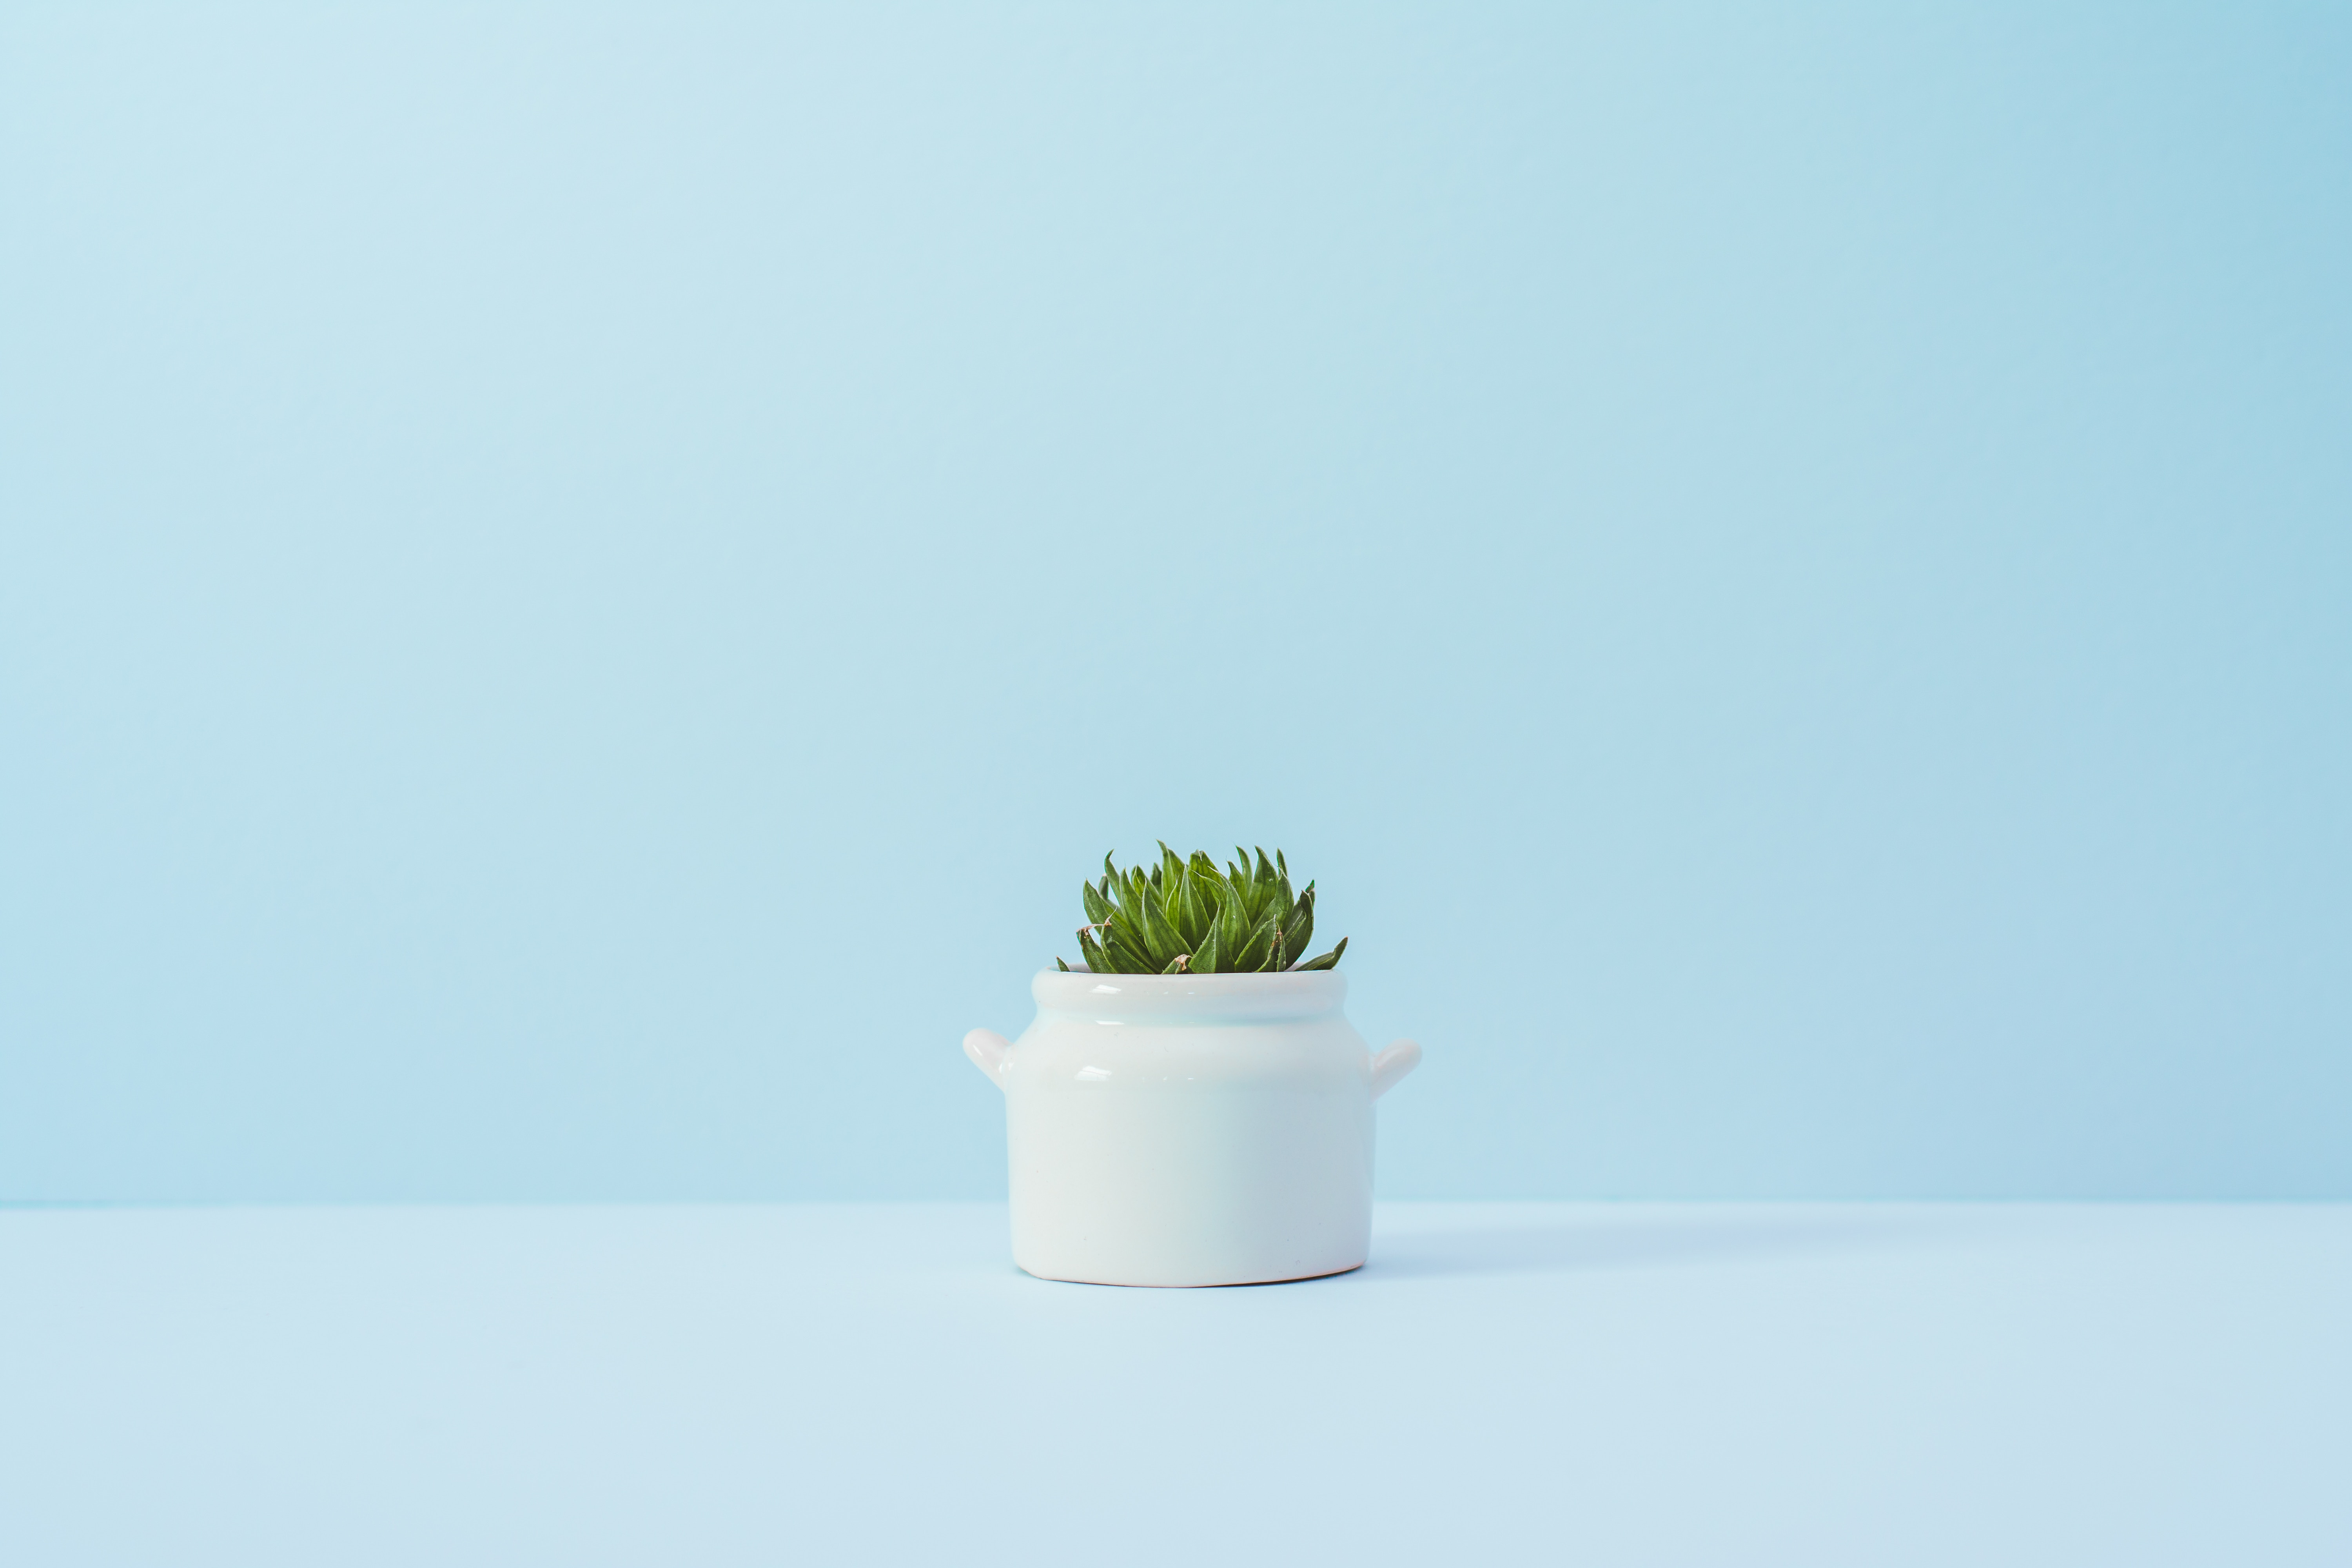 How to Apply Minimalism to Save Money and Your Life